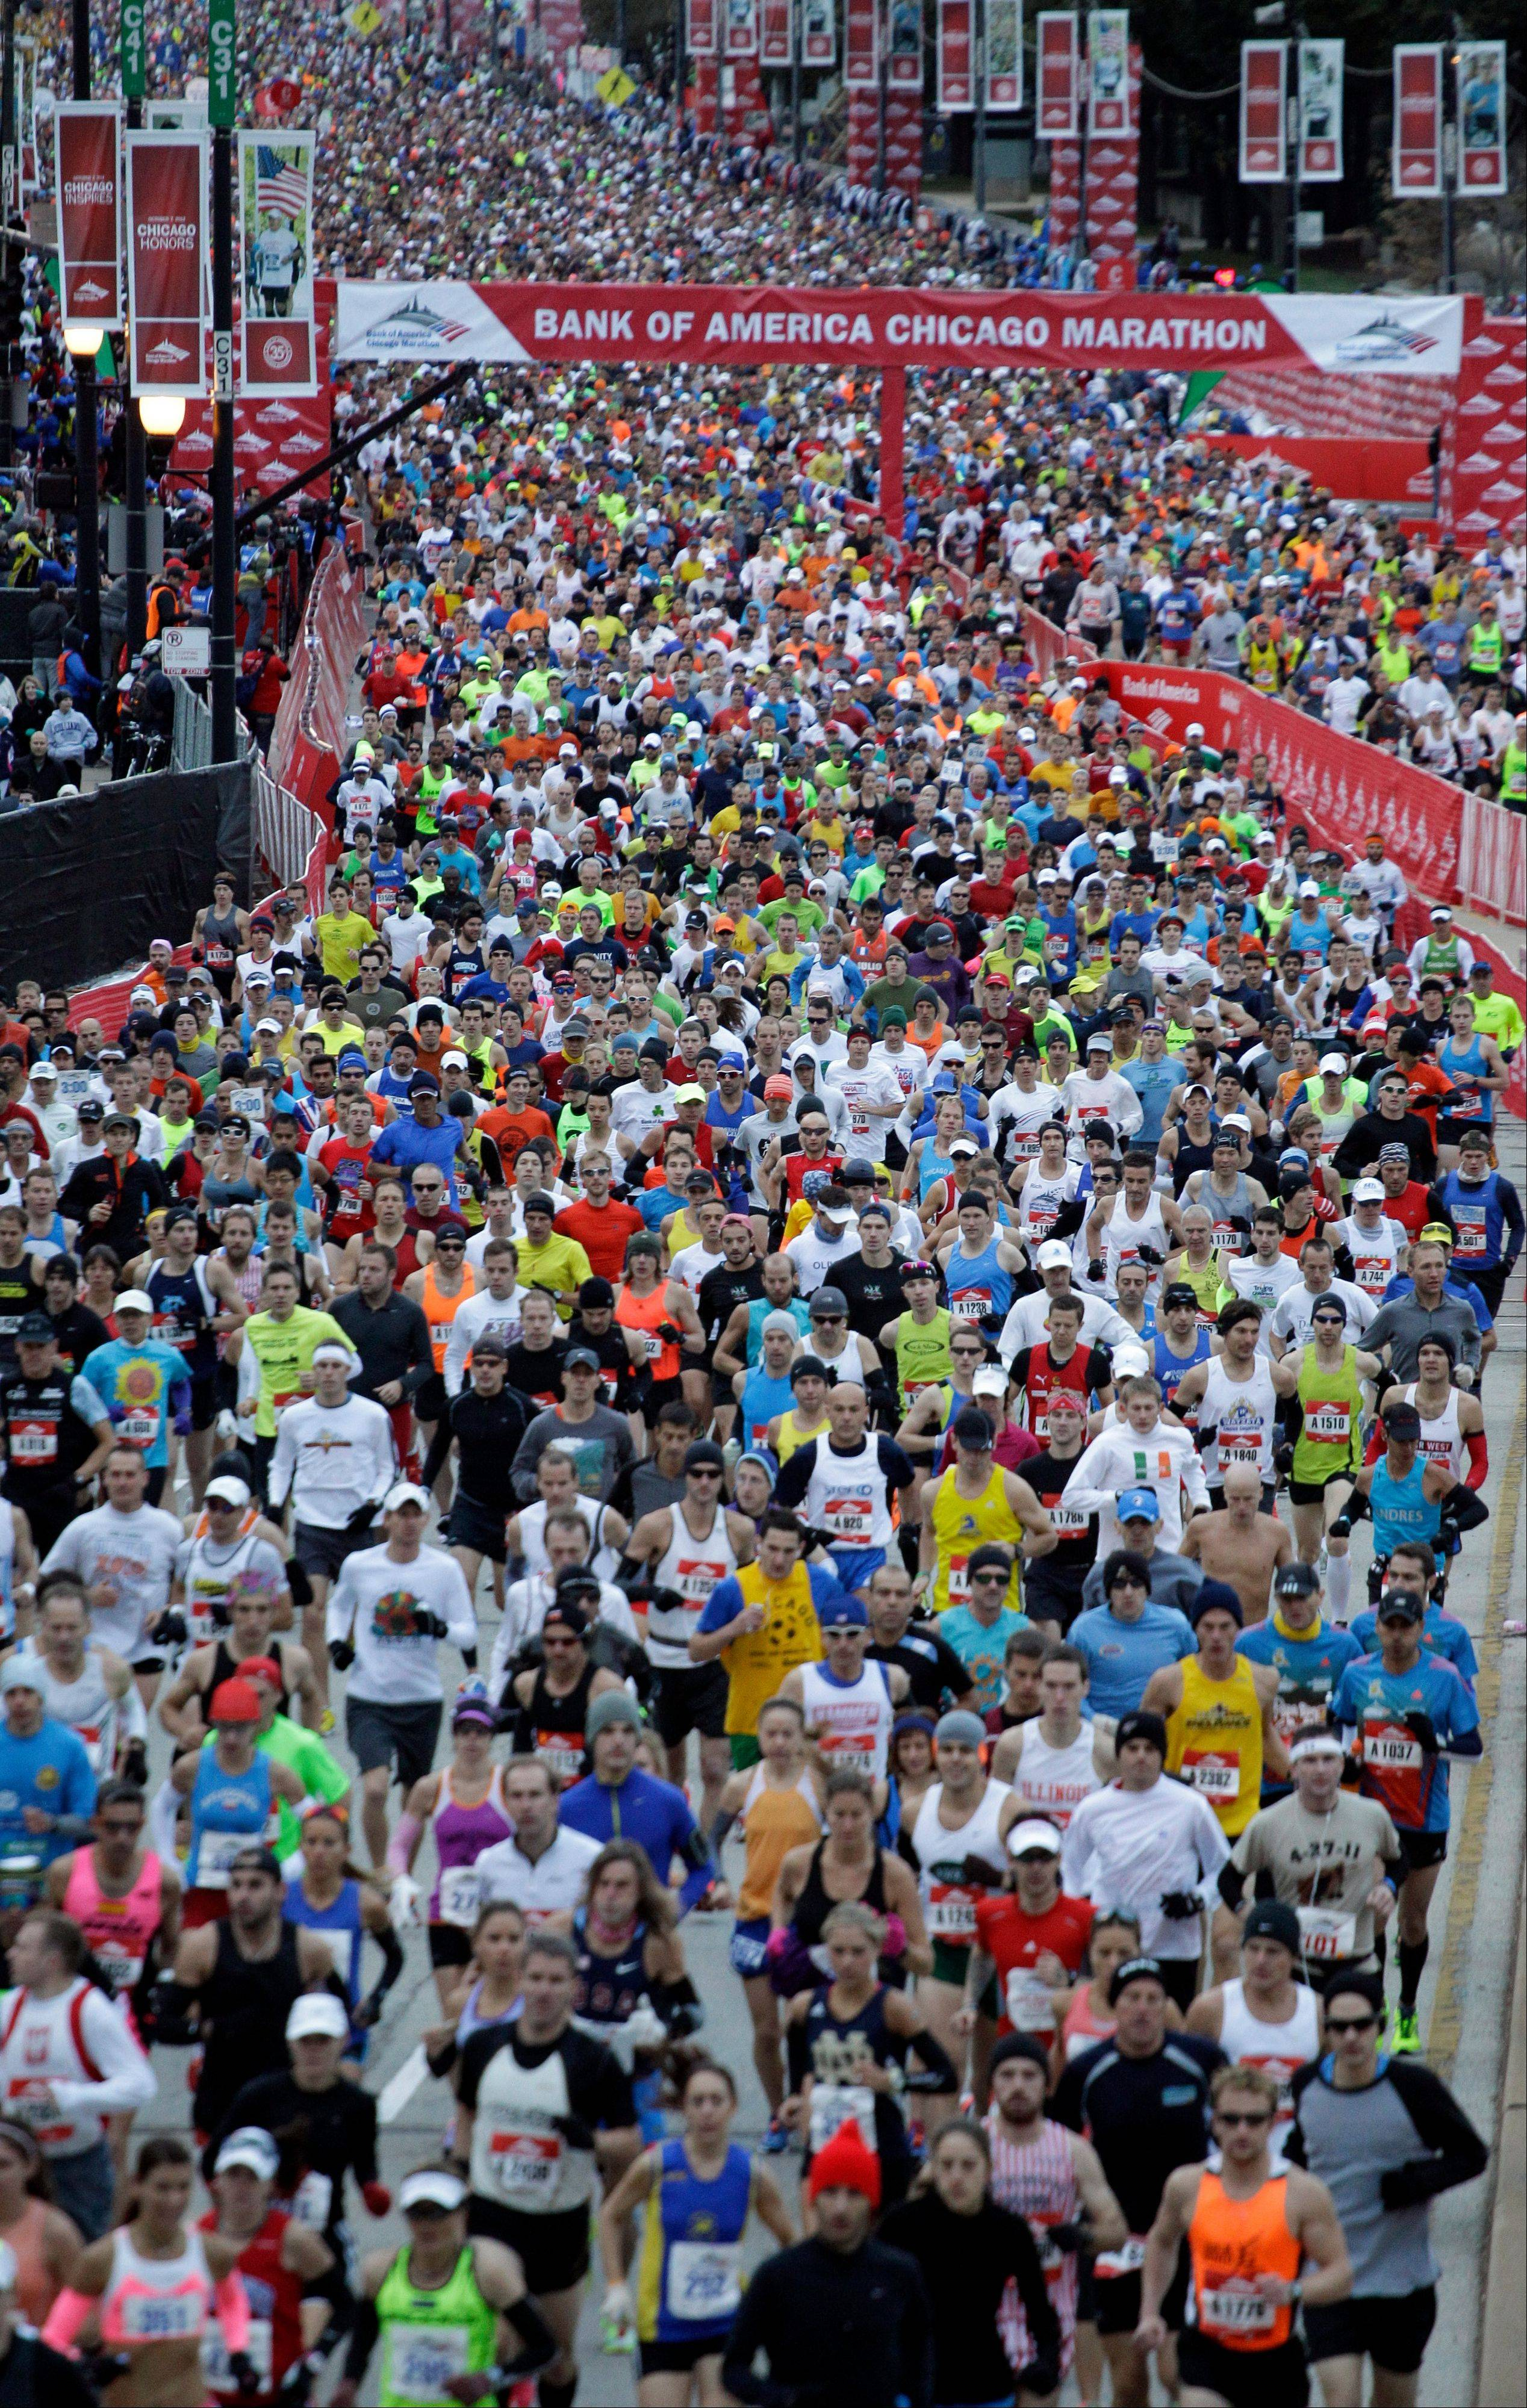 Runners start Sunday's Chicago Marathon. One runner suffered cardiac arrest around the 21st mile.